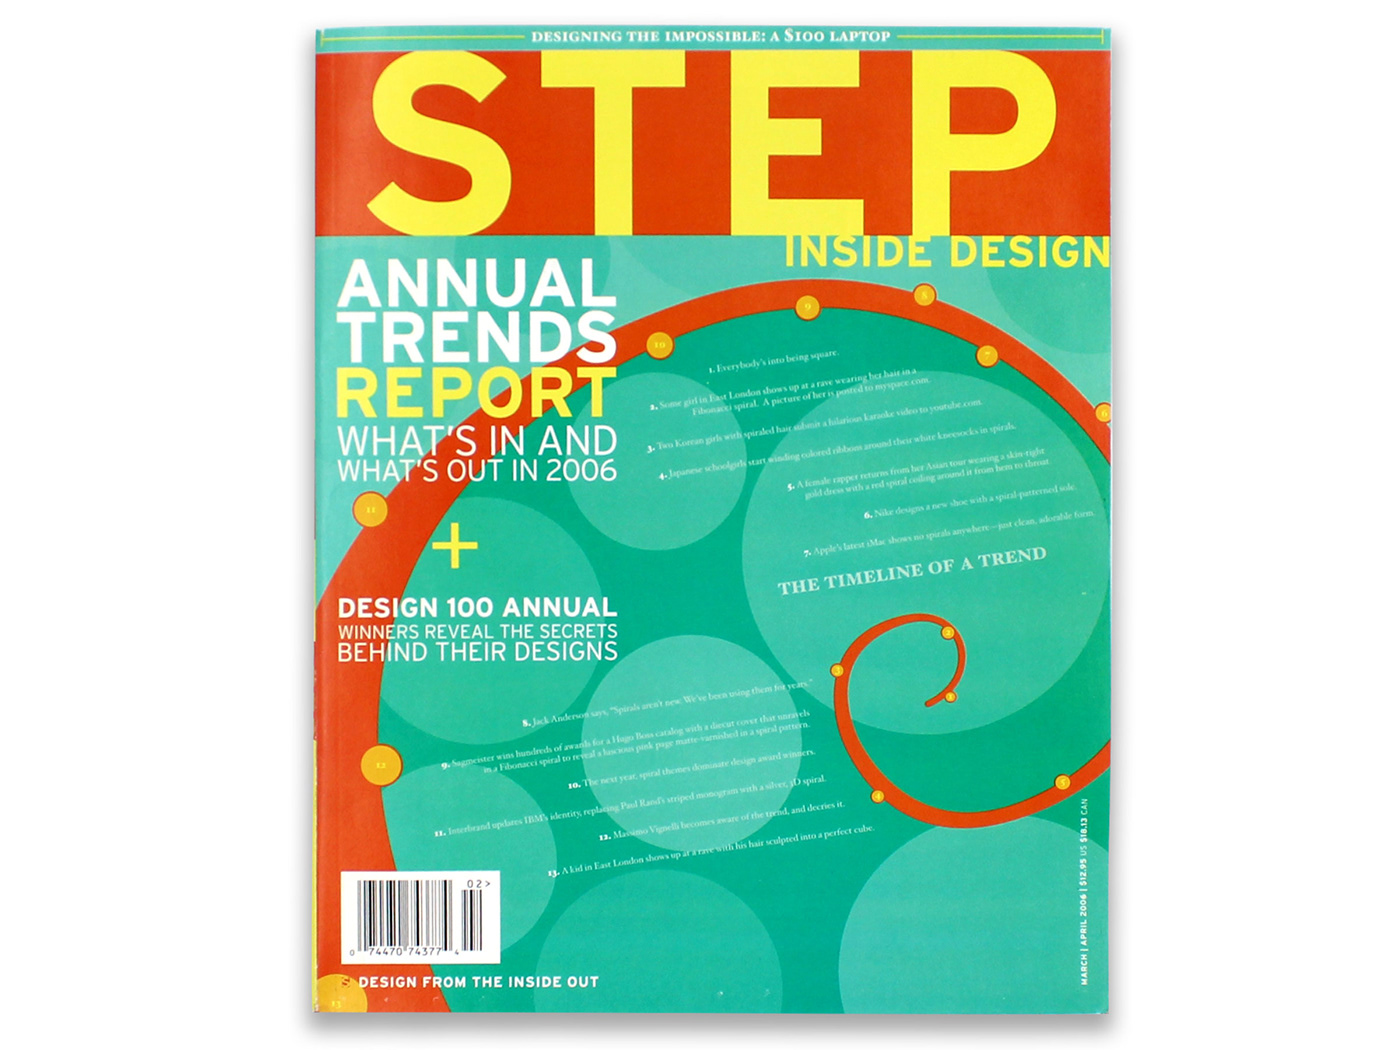 STEP Inside Design Magazine Cover